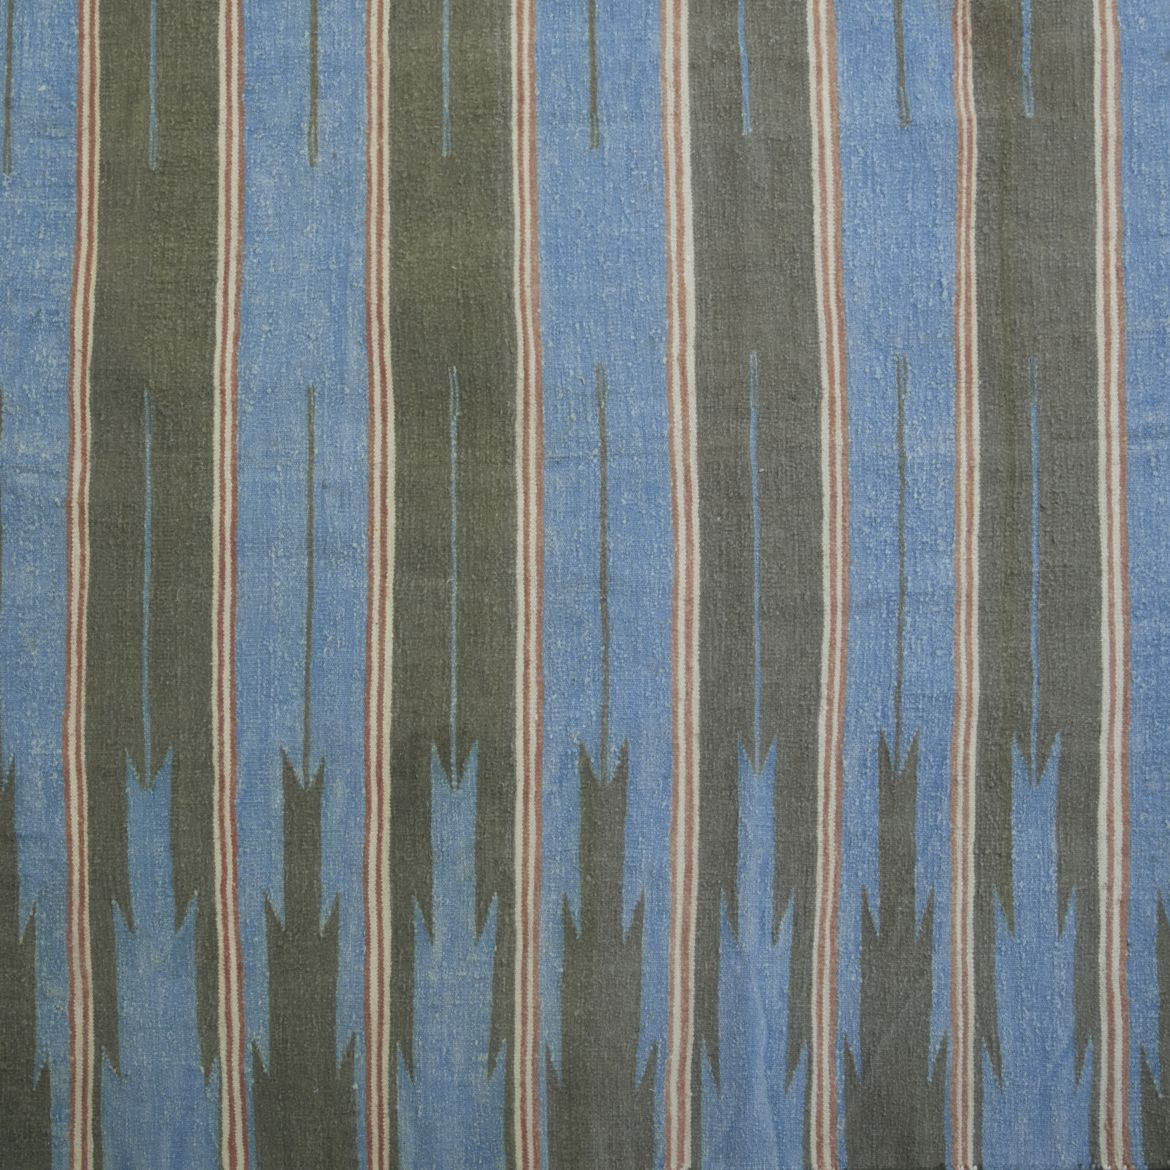 Pale Blue, Green & Grey Striped Dhurrie